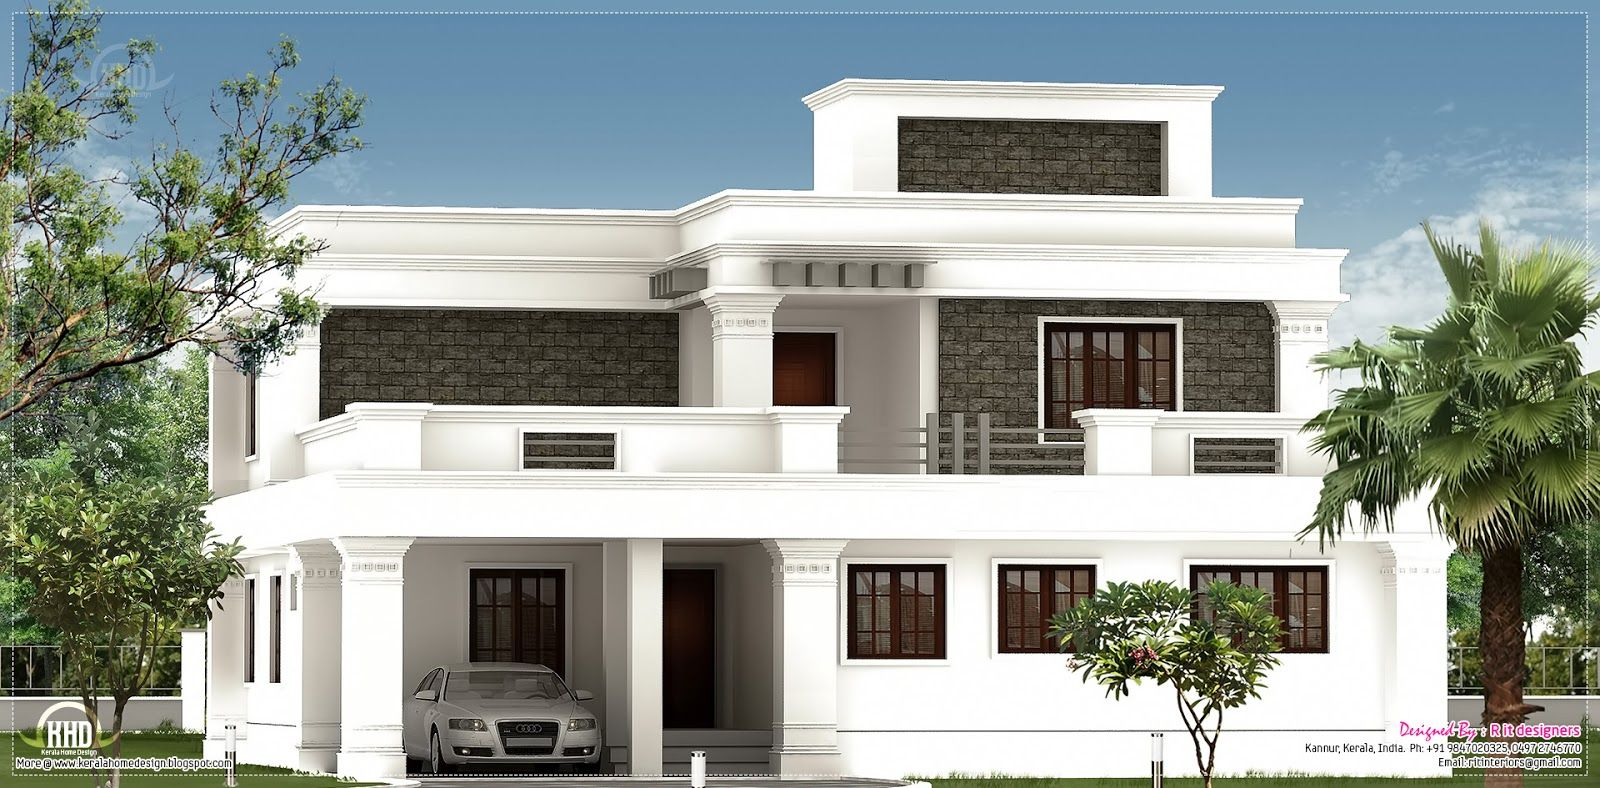 Flat roof homes designs flat roof villa exterior in 2400 Indian house exterior design